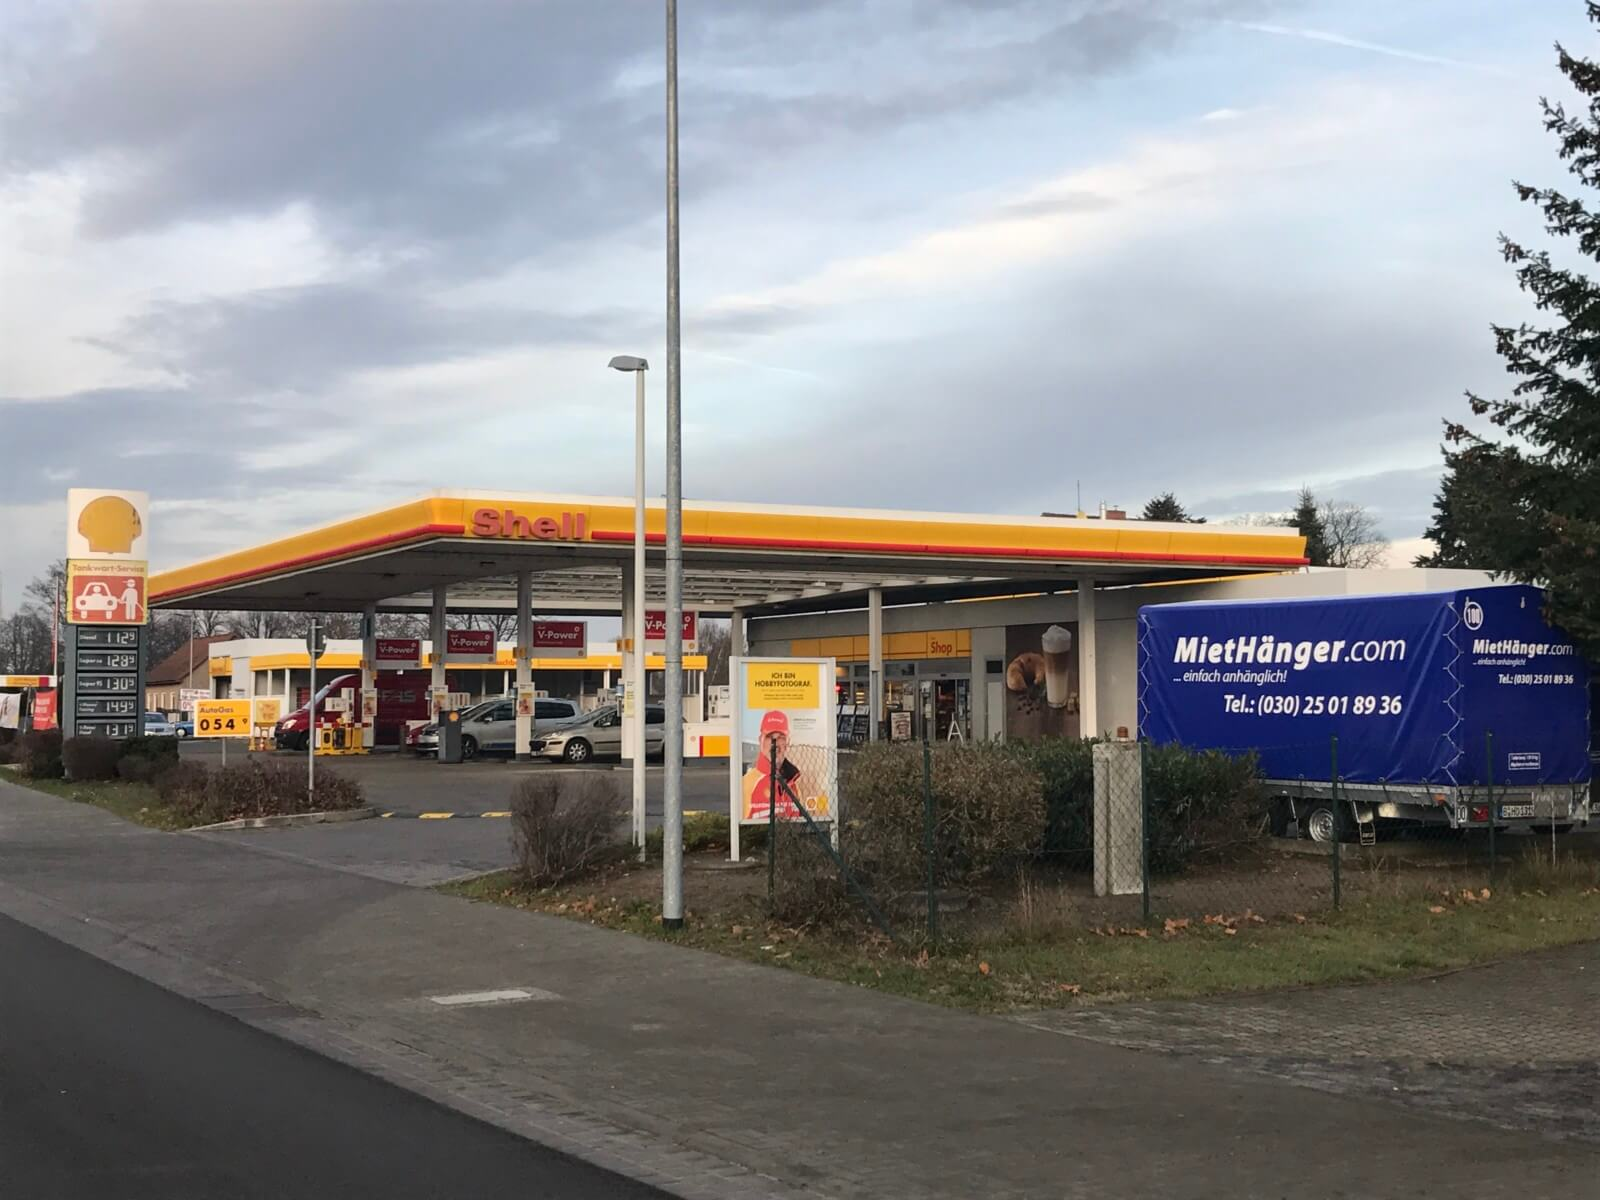 anh nger mieten station shell tankstelle f rstenwalde mieth nger anh nger mieten berlin. Black Bedroom Furniture Sets. Home Design Ideas